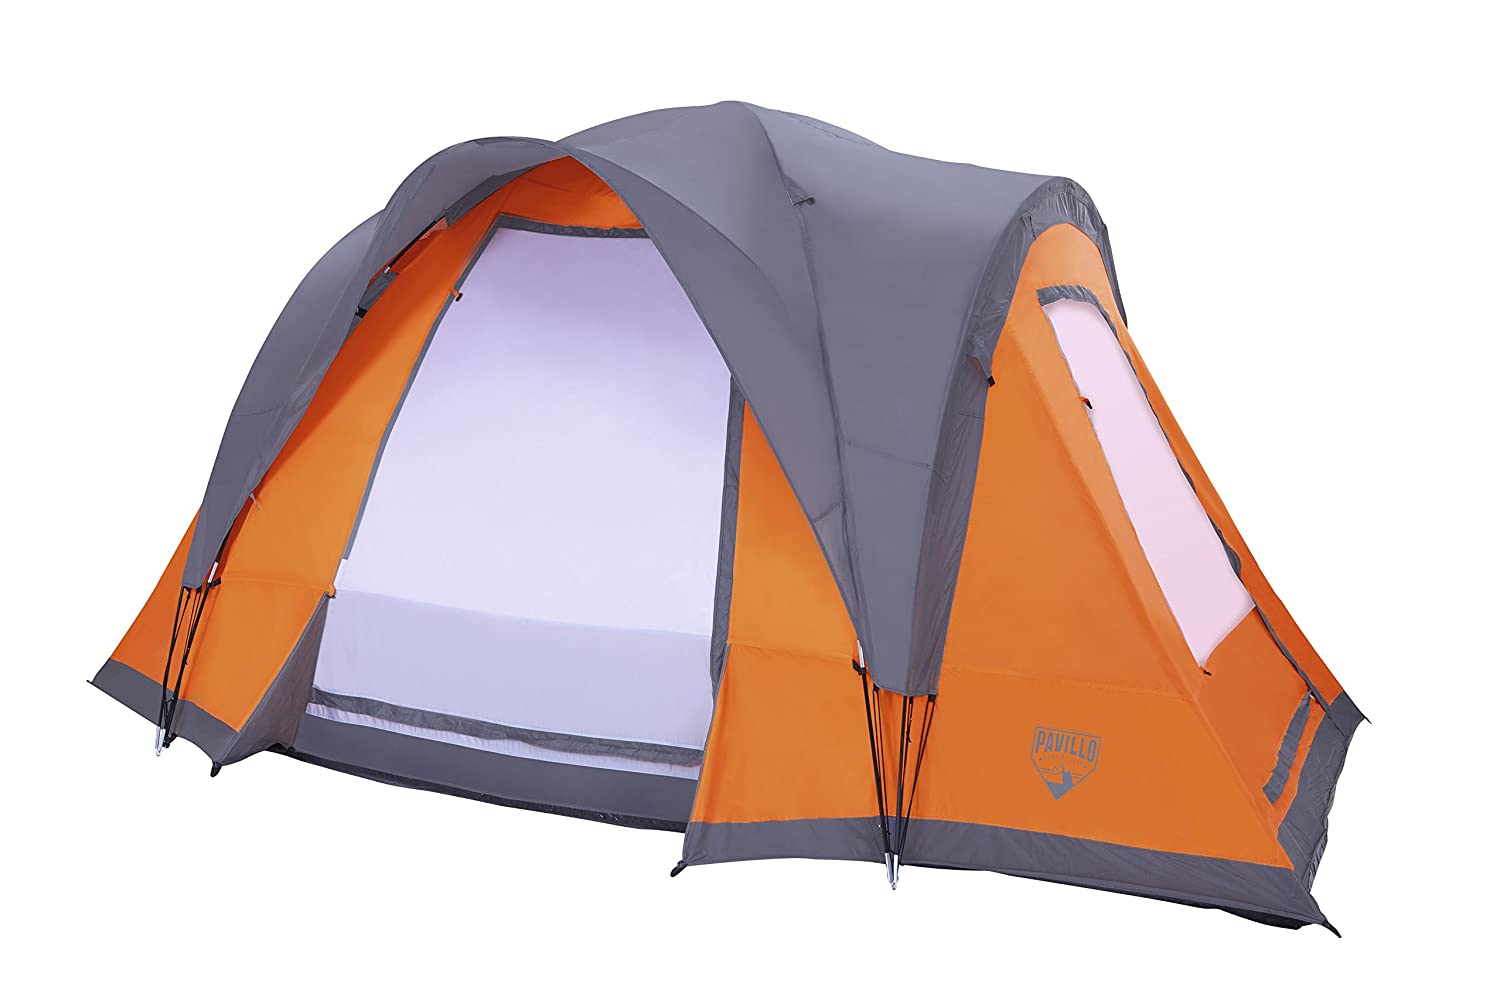 Bestway 6 Person Family Hiking C&ing 3-Tier Outdoor Dome Tent w/Carry Bag  sc 1 st  Amazon.com.au & Bestway Outdoor Tent for Camping Waterproof Quick-Opening Tents 4 ...